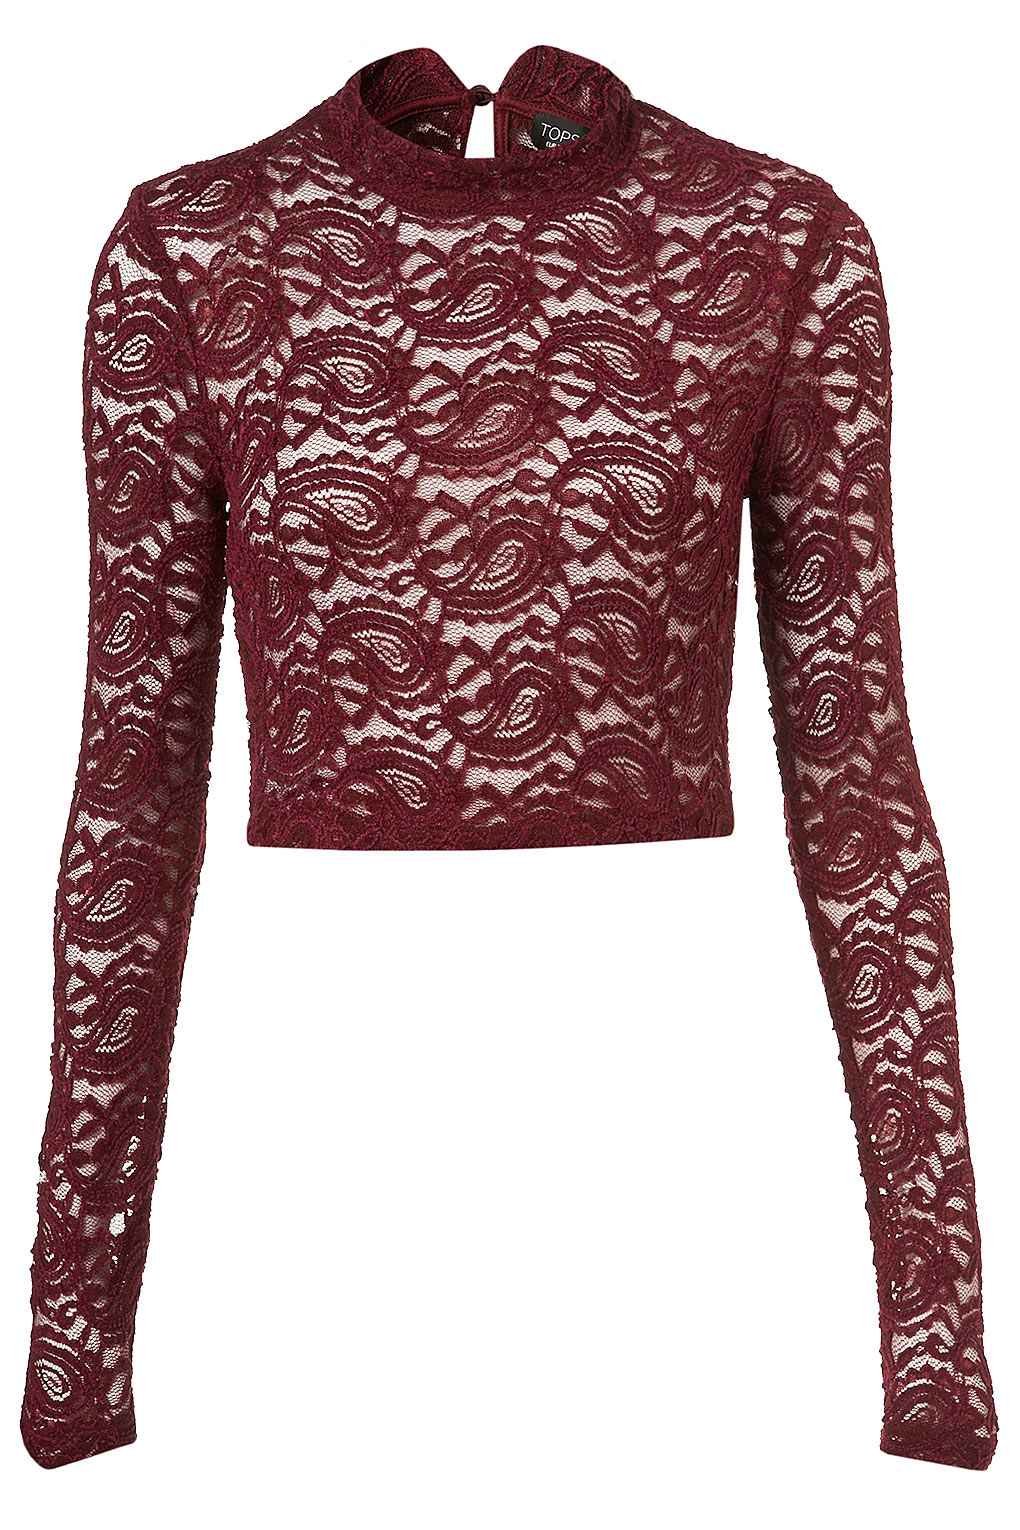 a6f4d7b7627 TOPSHOP Lace Roll Neck Crop Top in Purple - Lyst